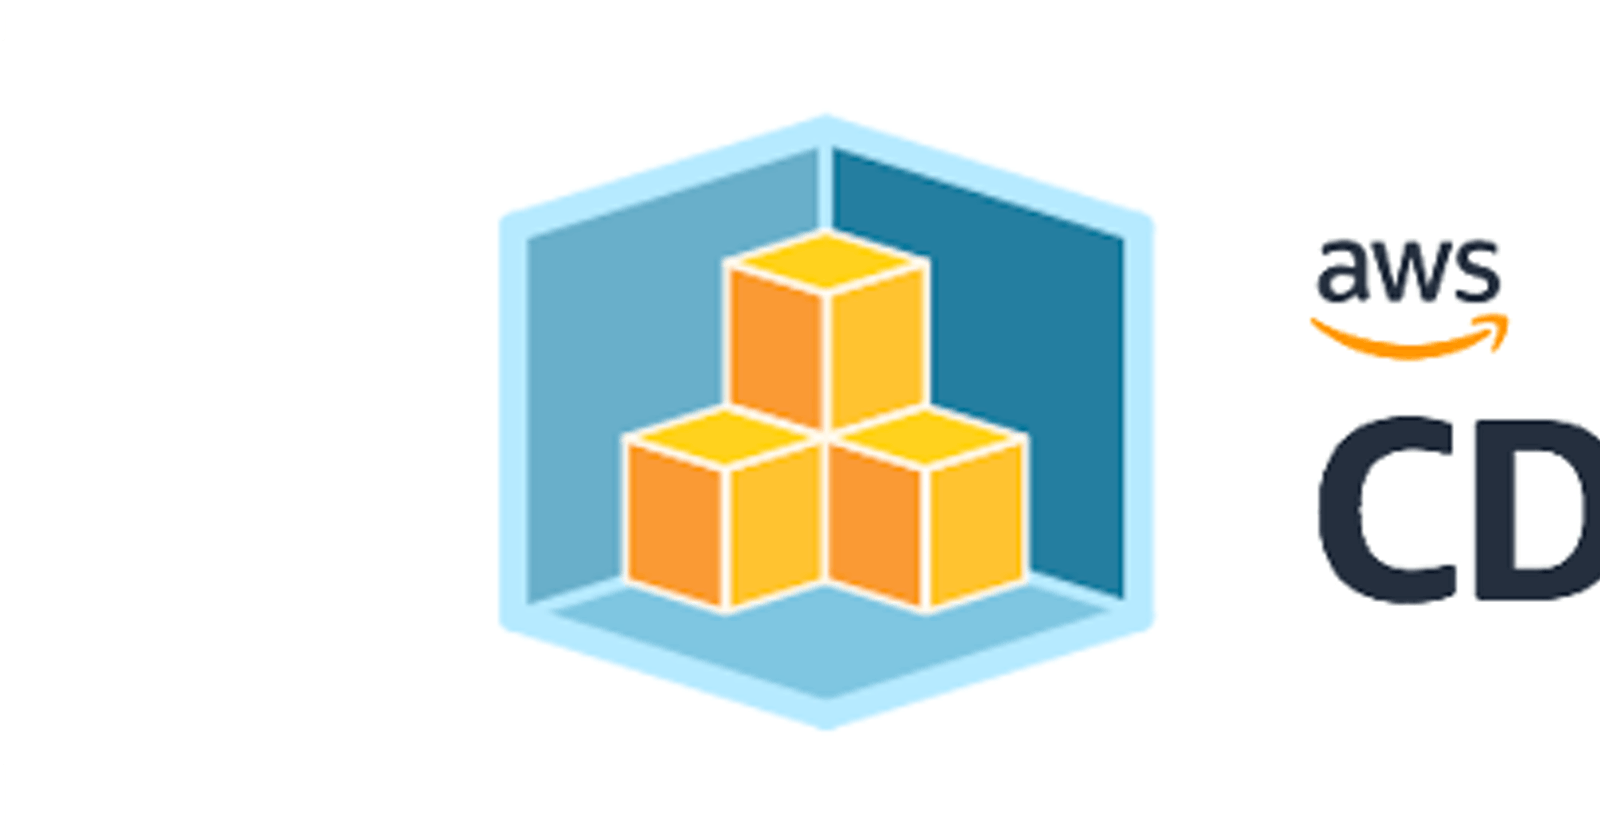 Deploy a static website with AWS CDK